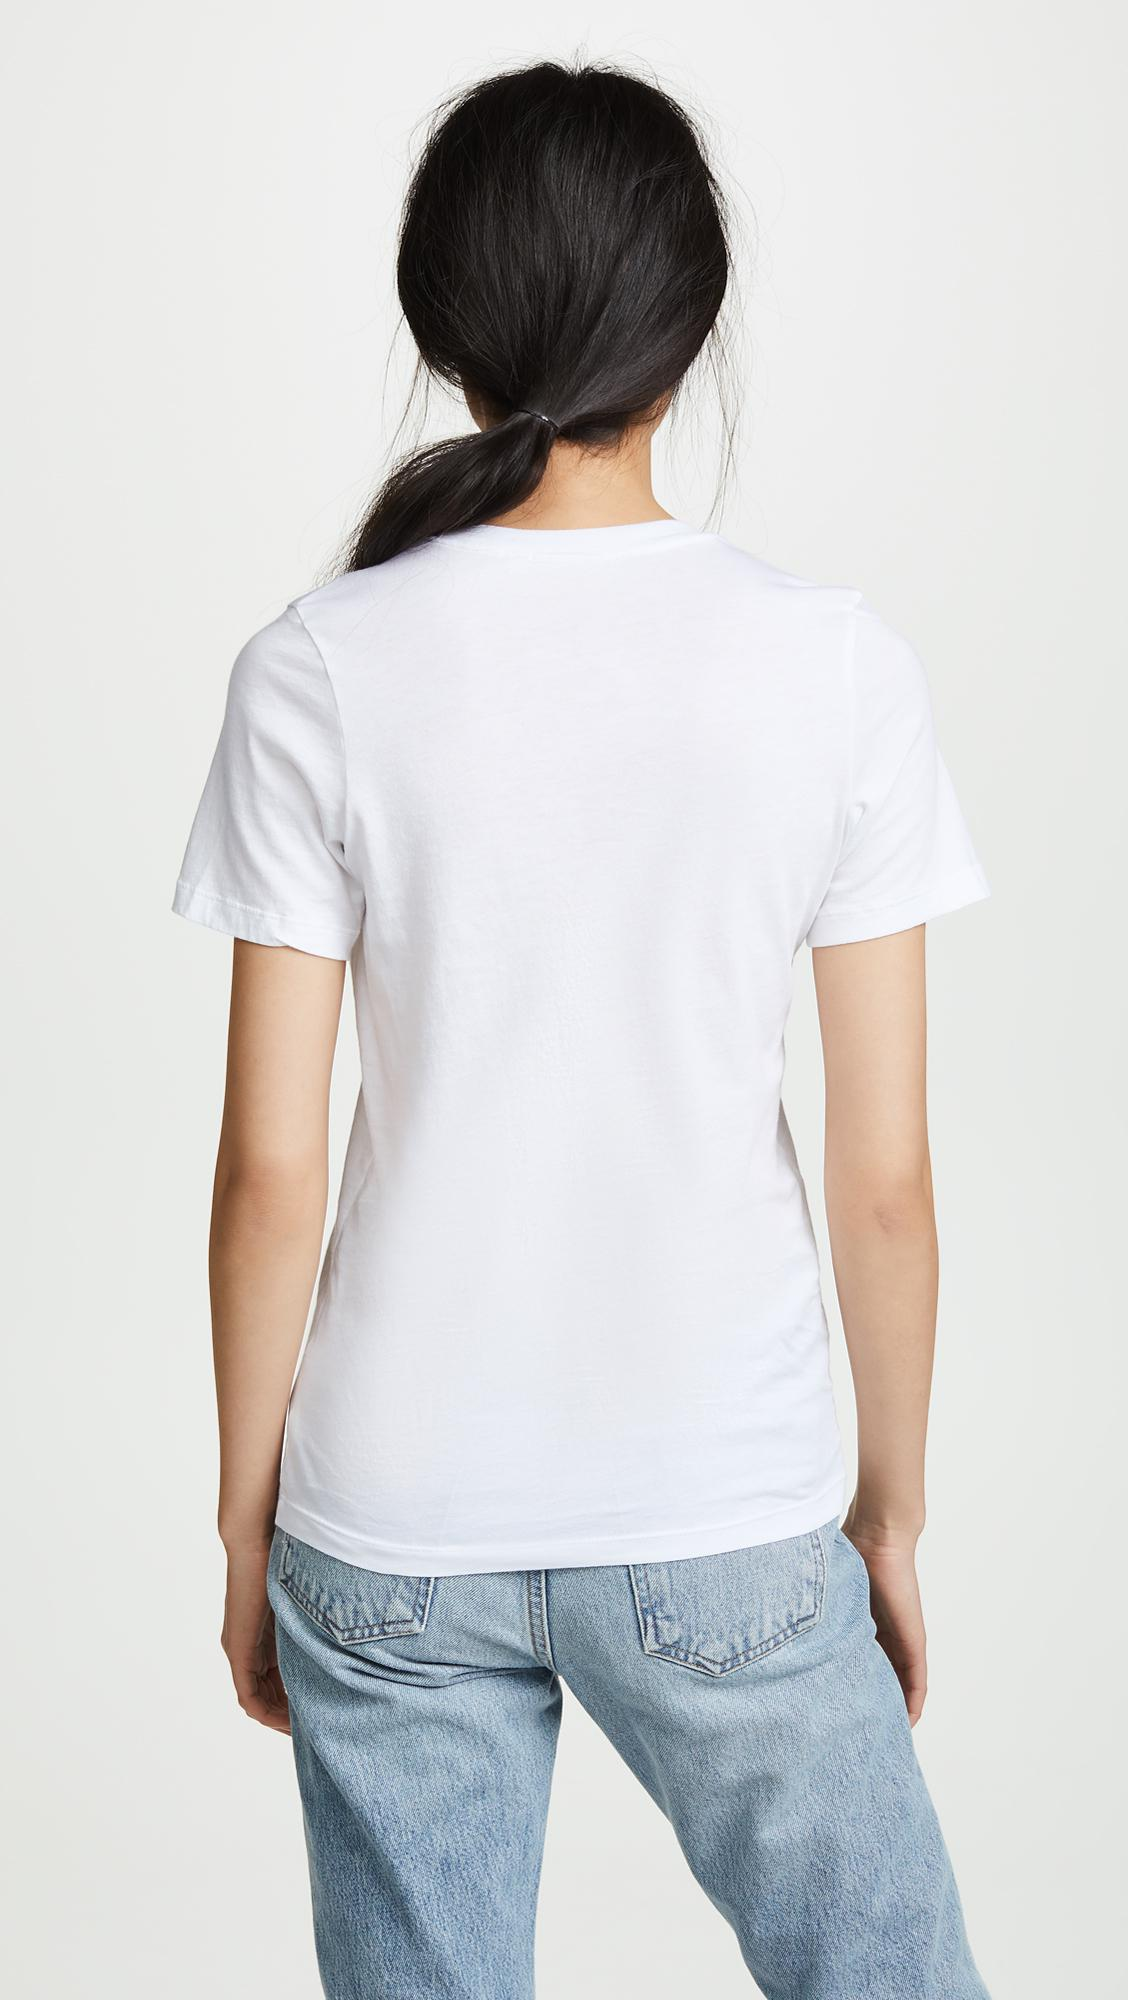 AG Jeans Cotton Gray Boy Tee in White